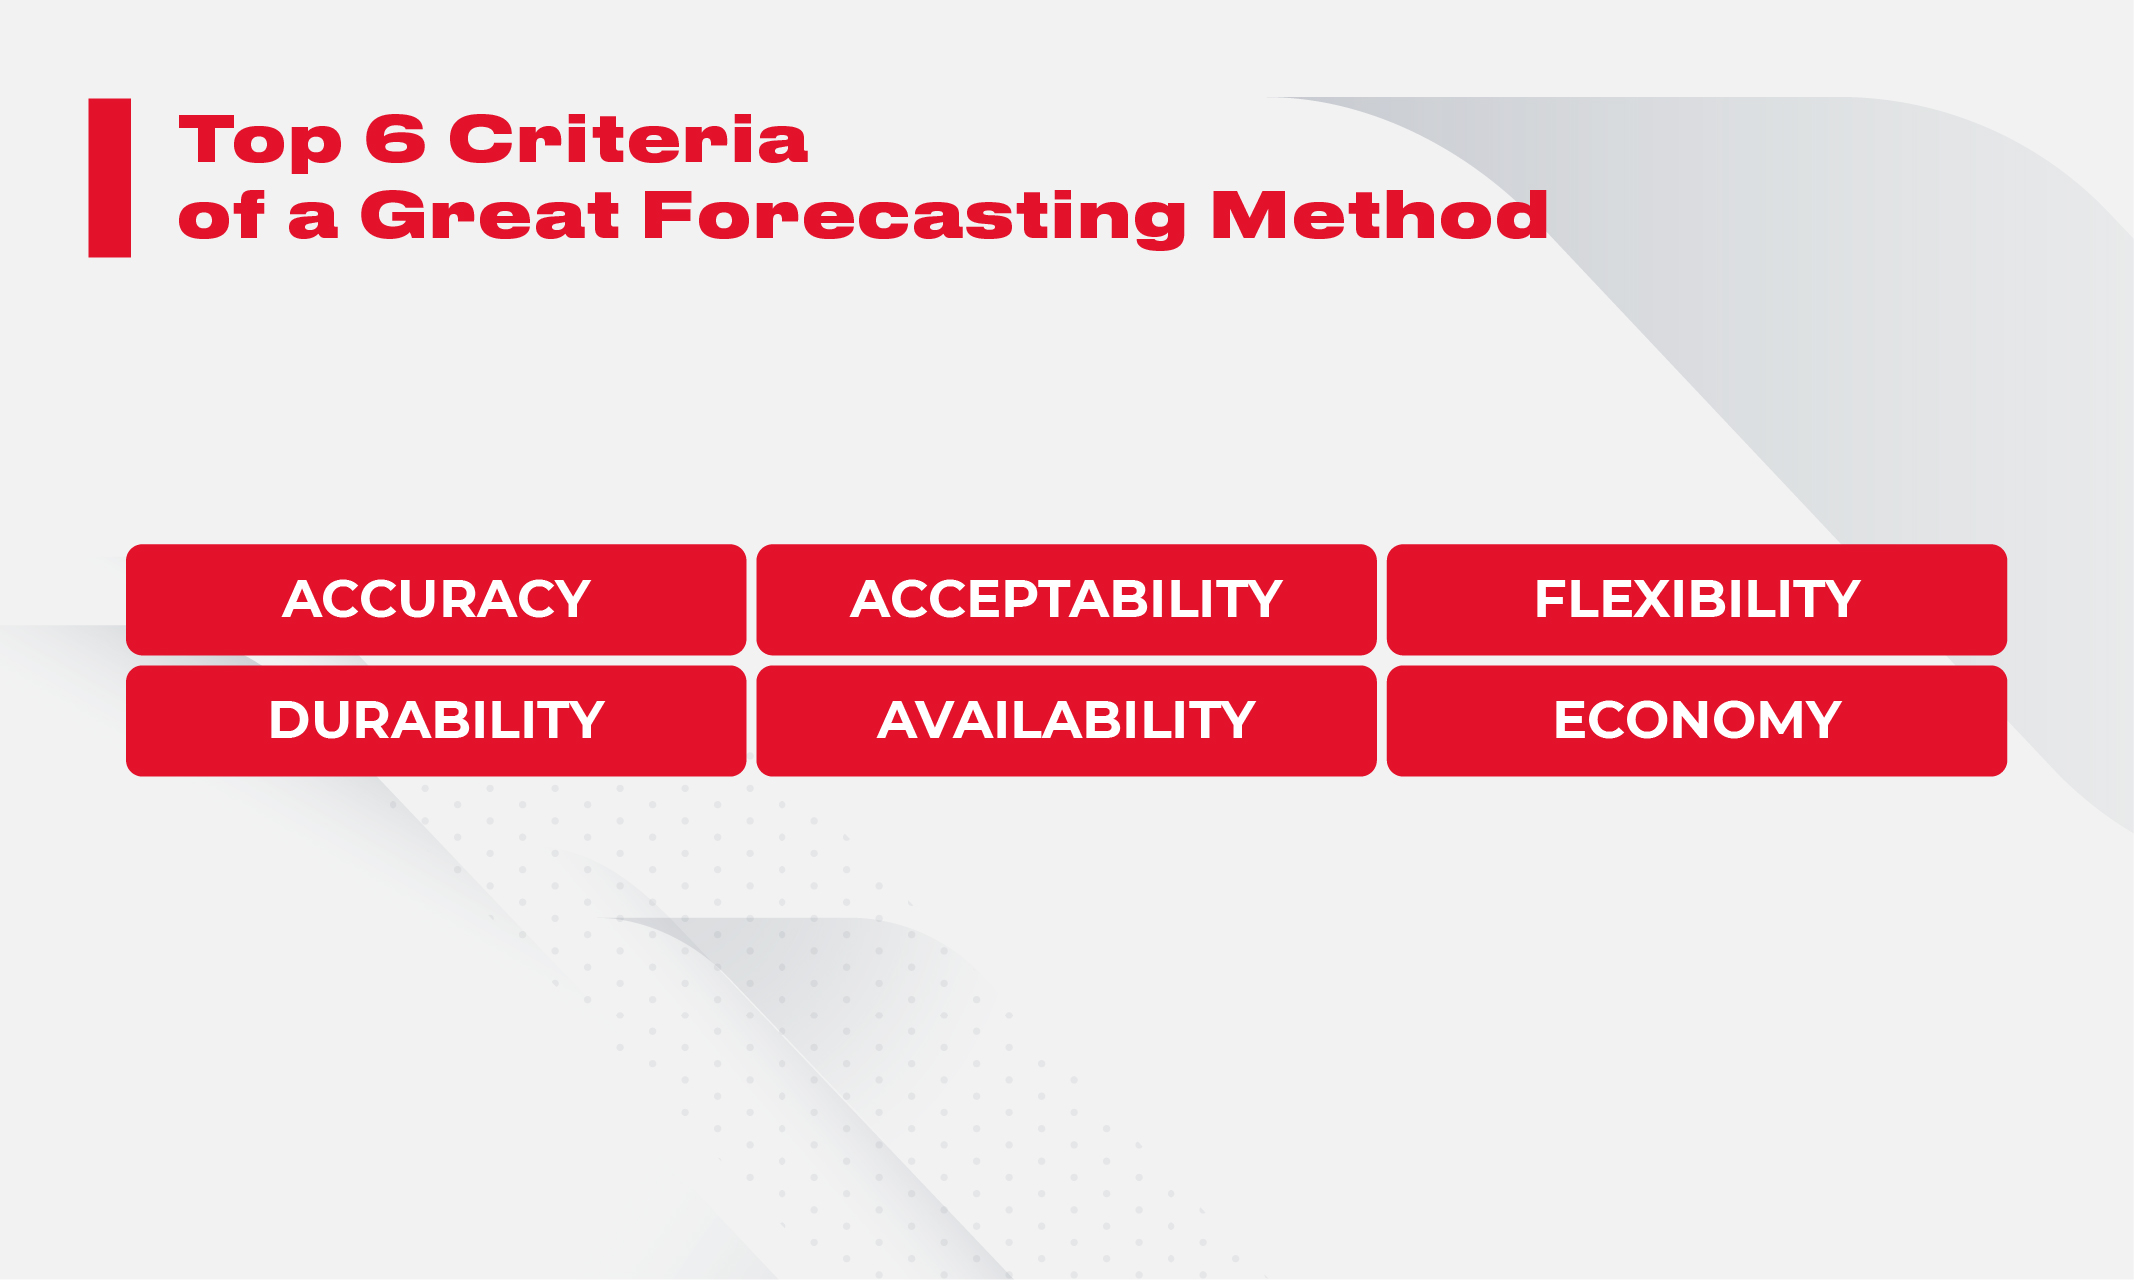 Criteria of a Great Forecasting Method